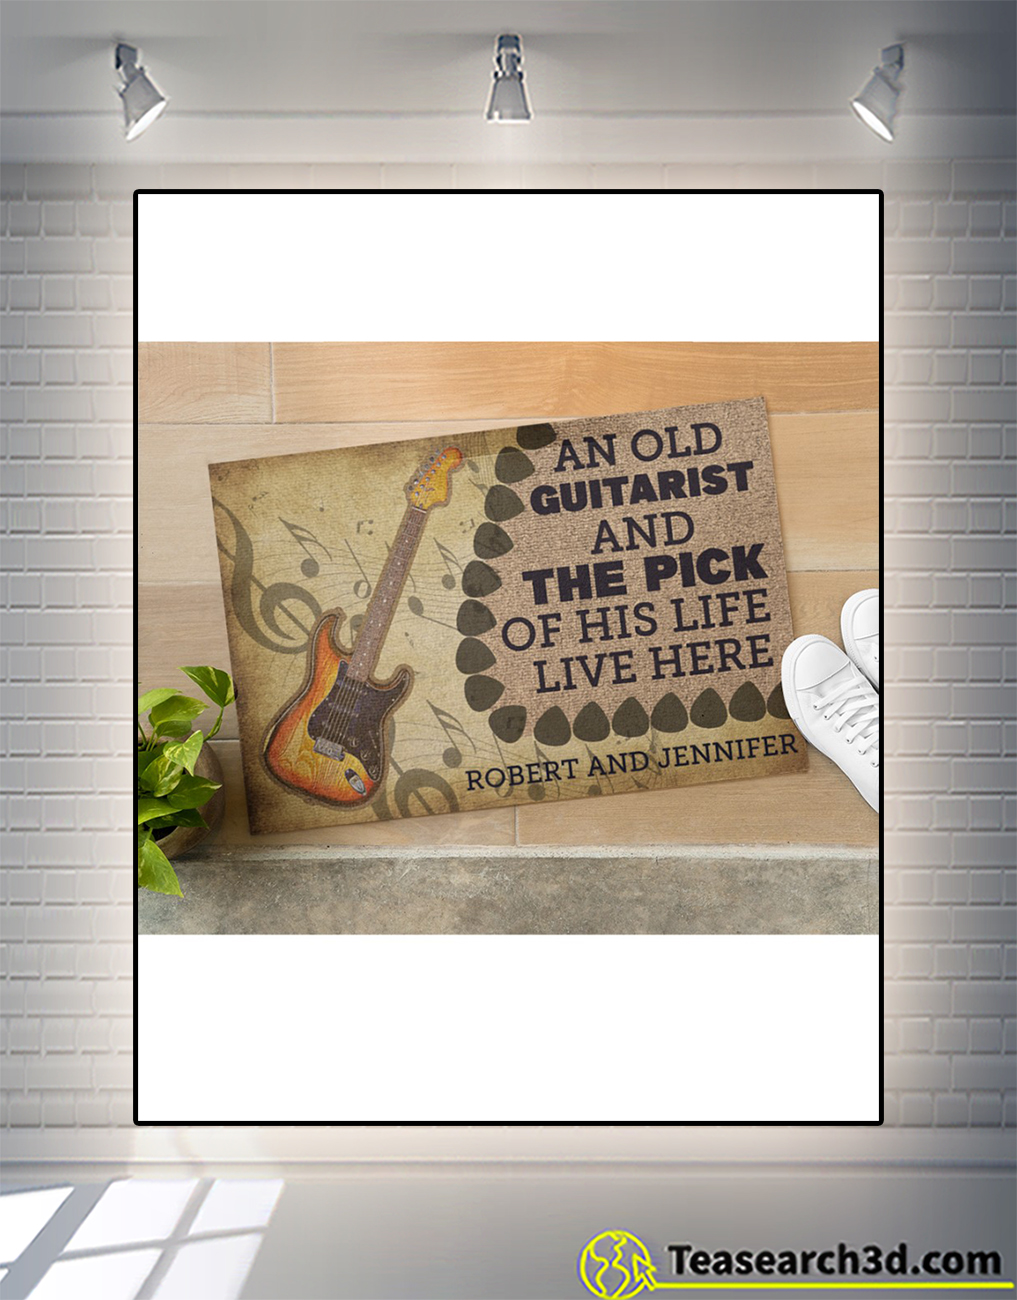 Personalized name An old guitarist and the pick of his life live here doormat size S